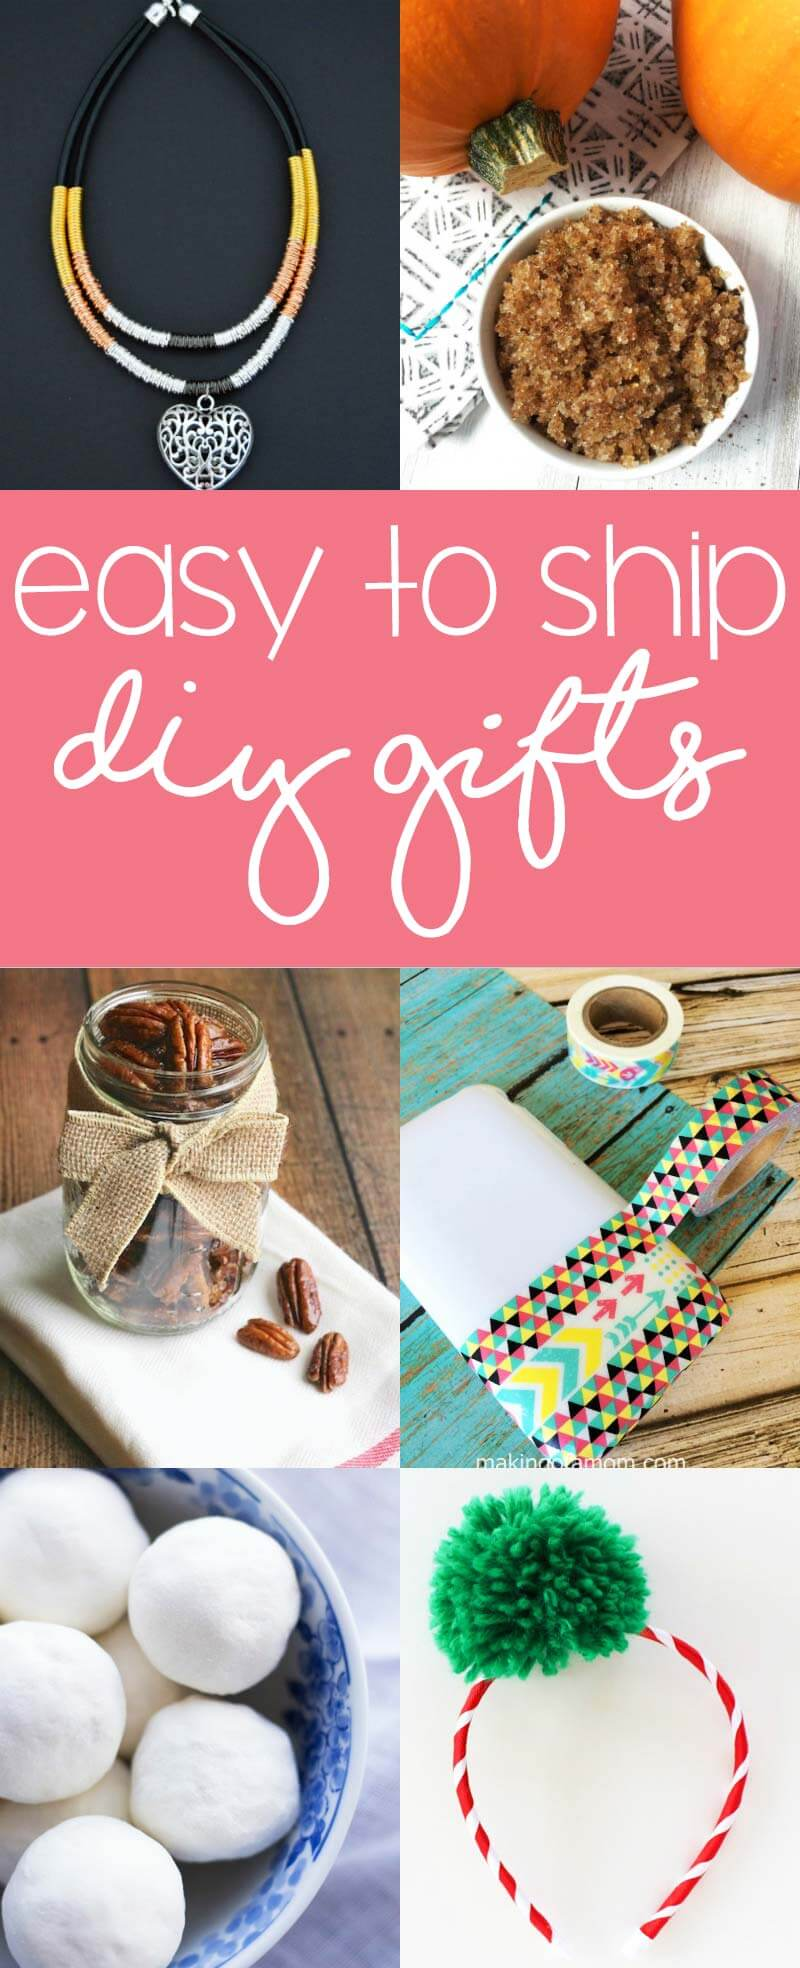 DIY Gifts that are Easy to Ship - gifts that are lightweight, smaller, don't perish as easily, etc for worry-free mailing.